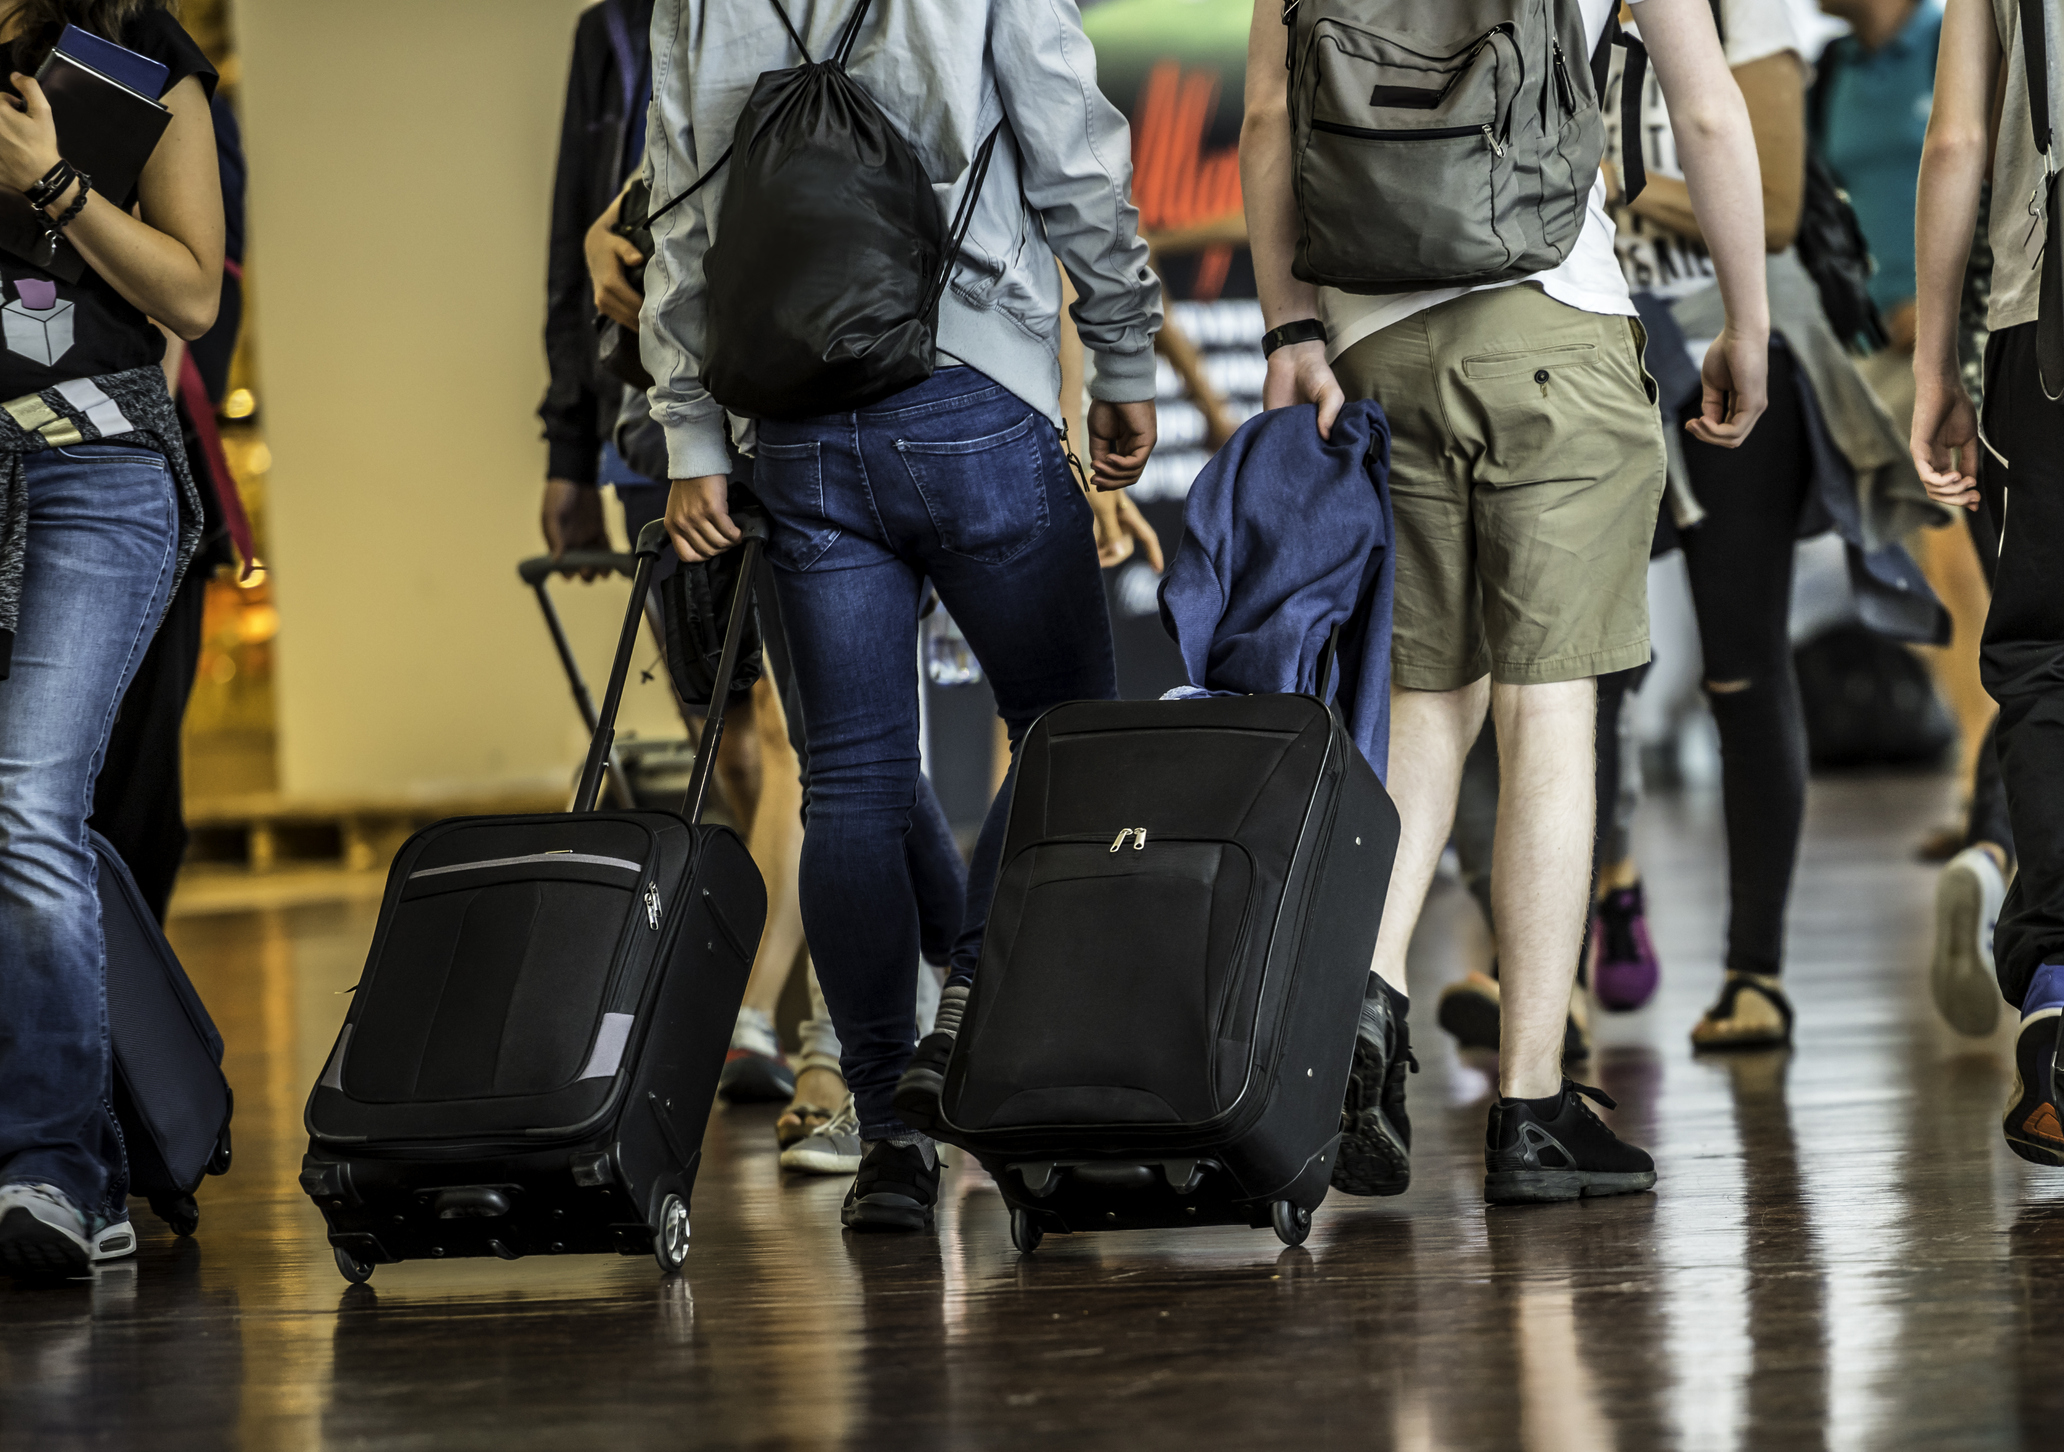 Travelers with suitcases walking through a crowded airport terminal.